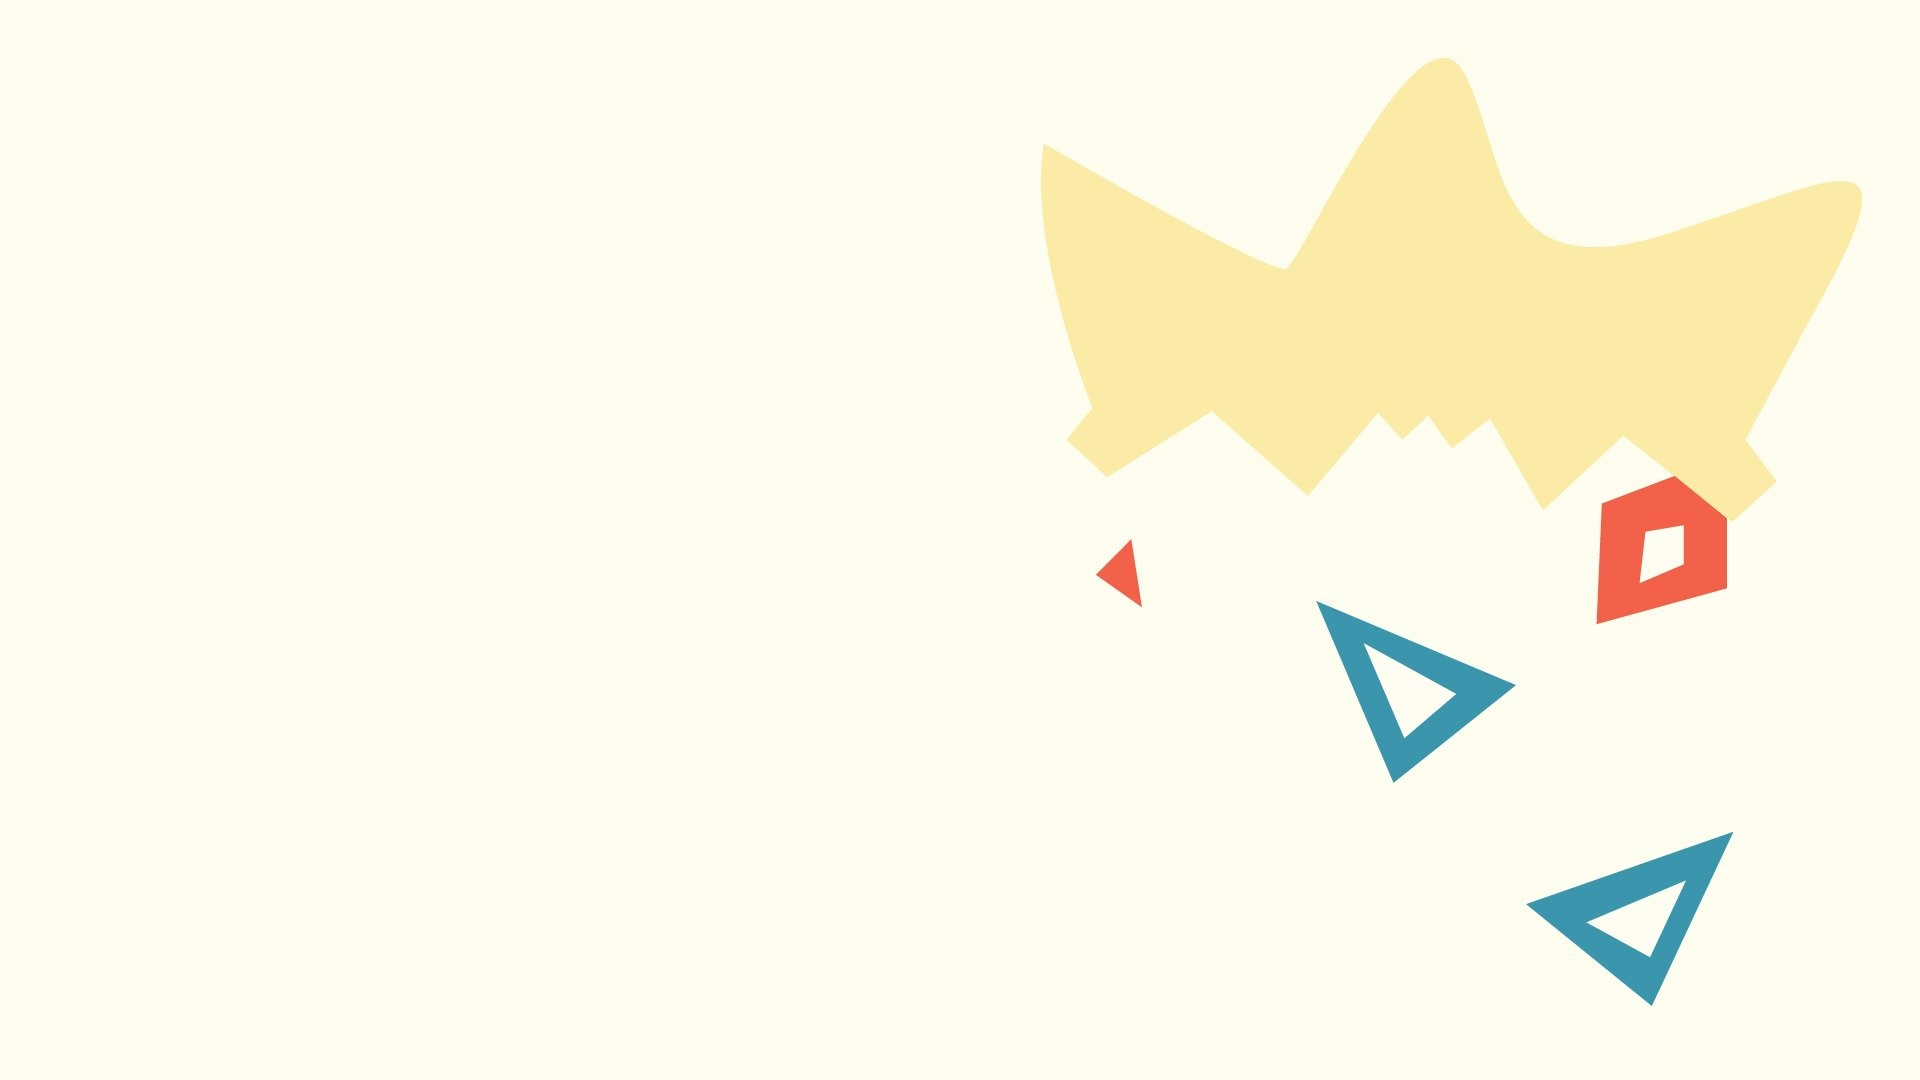 1920x1080 Minimalist Pokemon. Ninetails. | Pictures I Love | Pinterest | Pokémon,  Minimalist wallpaper and Pokemon stuff